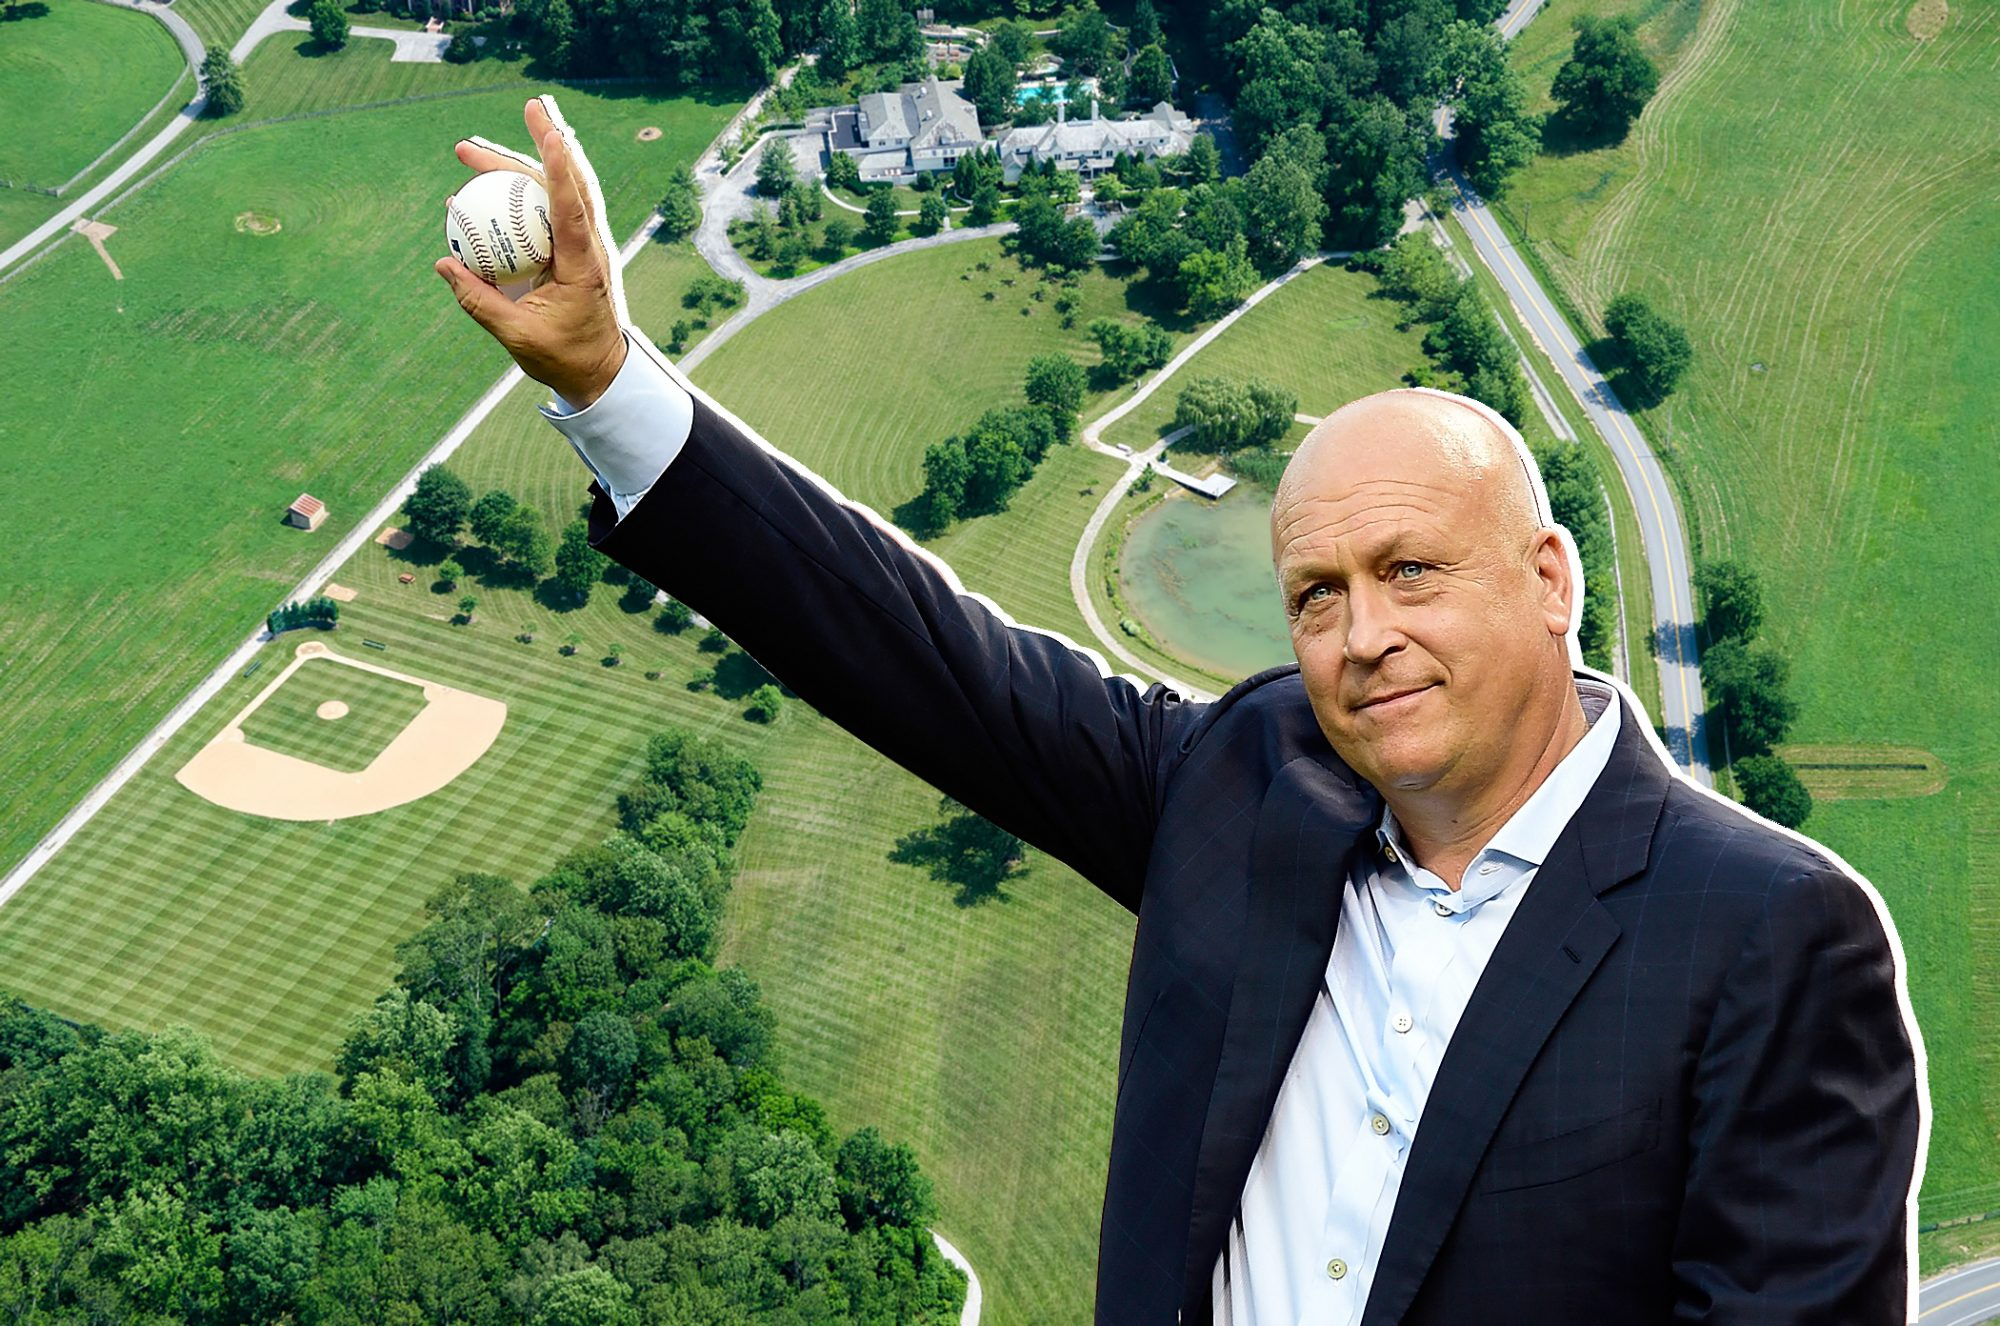 This Baseball Legend Is Auctioning Off His 24-Acre Mansion With Its Own Diamond